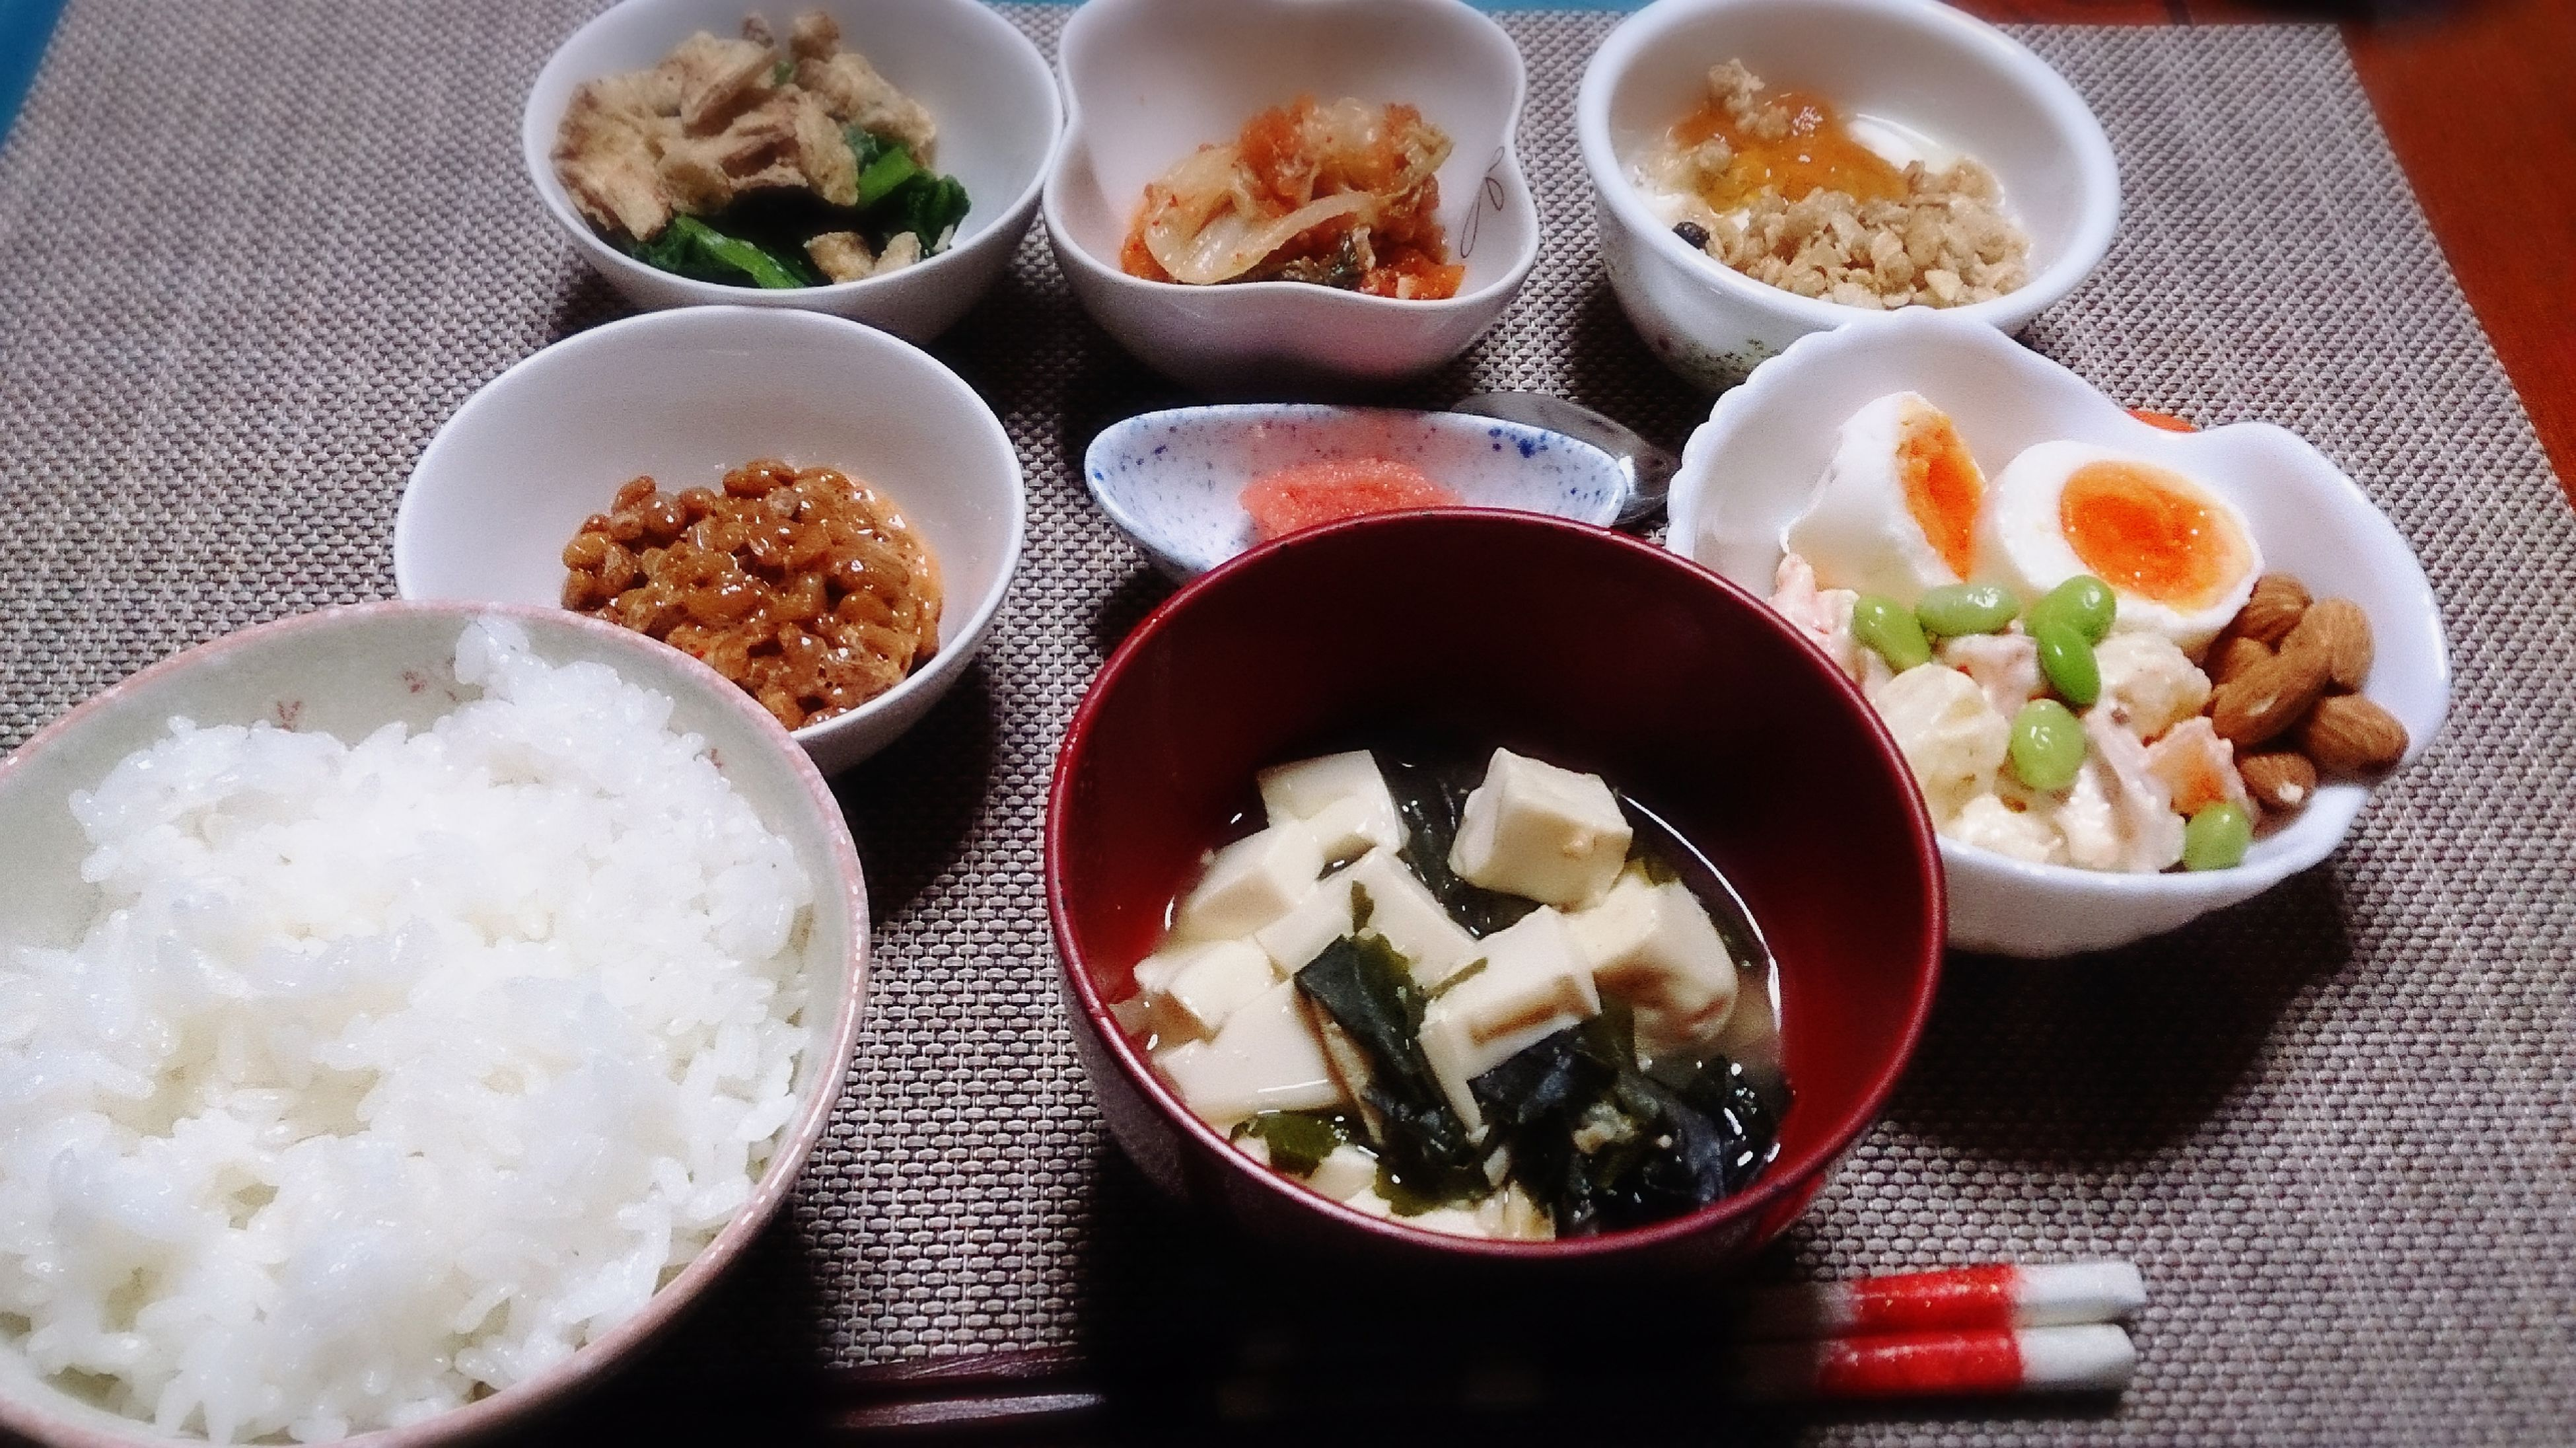 food and drink, food, freshness, ready-to-eat, indoors, table, plate, still life, healthy eating, meal, bowl, serving size, high angle view, served, meat, rice - food staple, salad, indulgence, vegetable, seafood